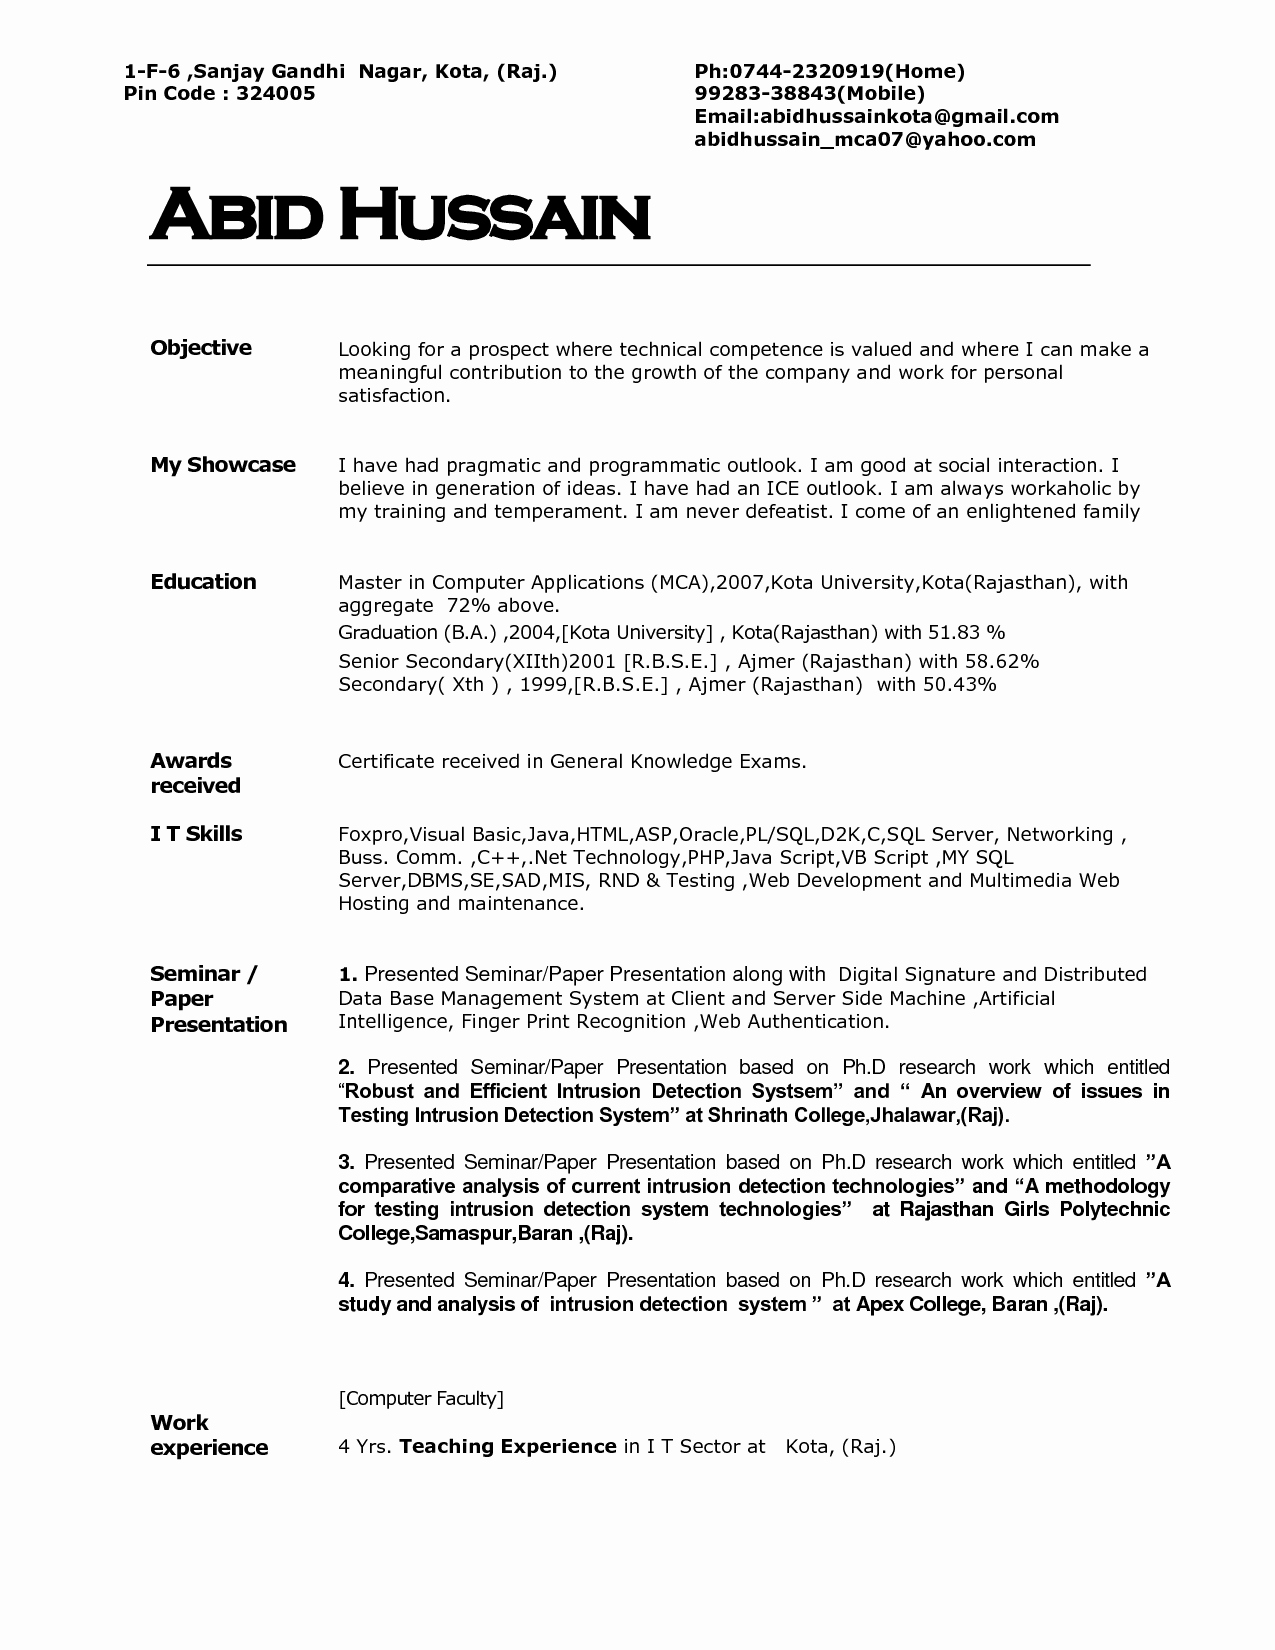 Resumes On Microsoft Word 2007 Lovely Download Resume Wizard Microsoft Word 2007 Bongdaao